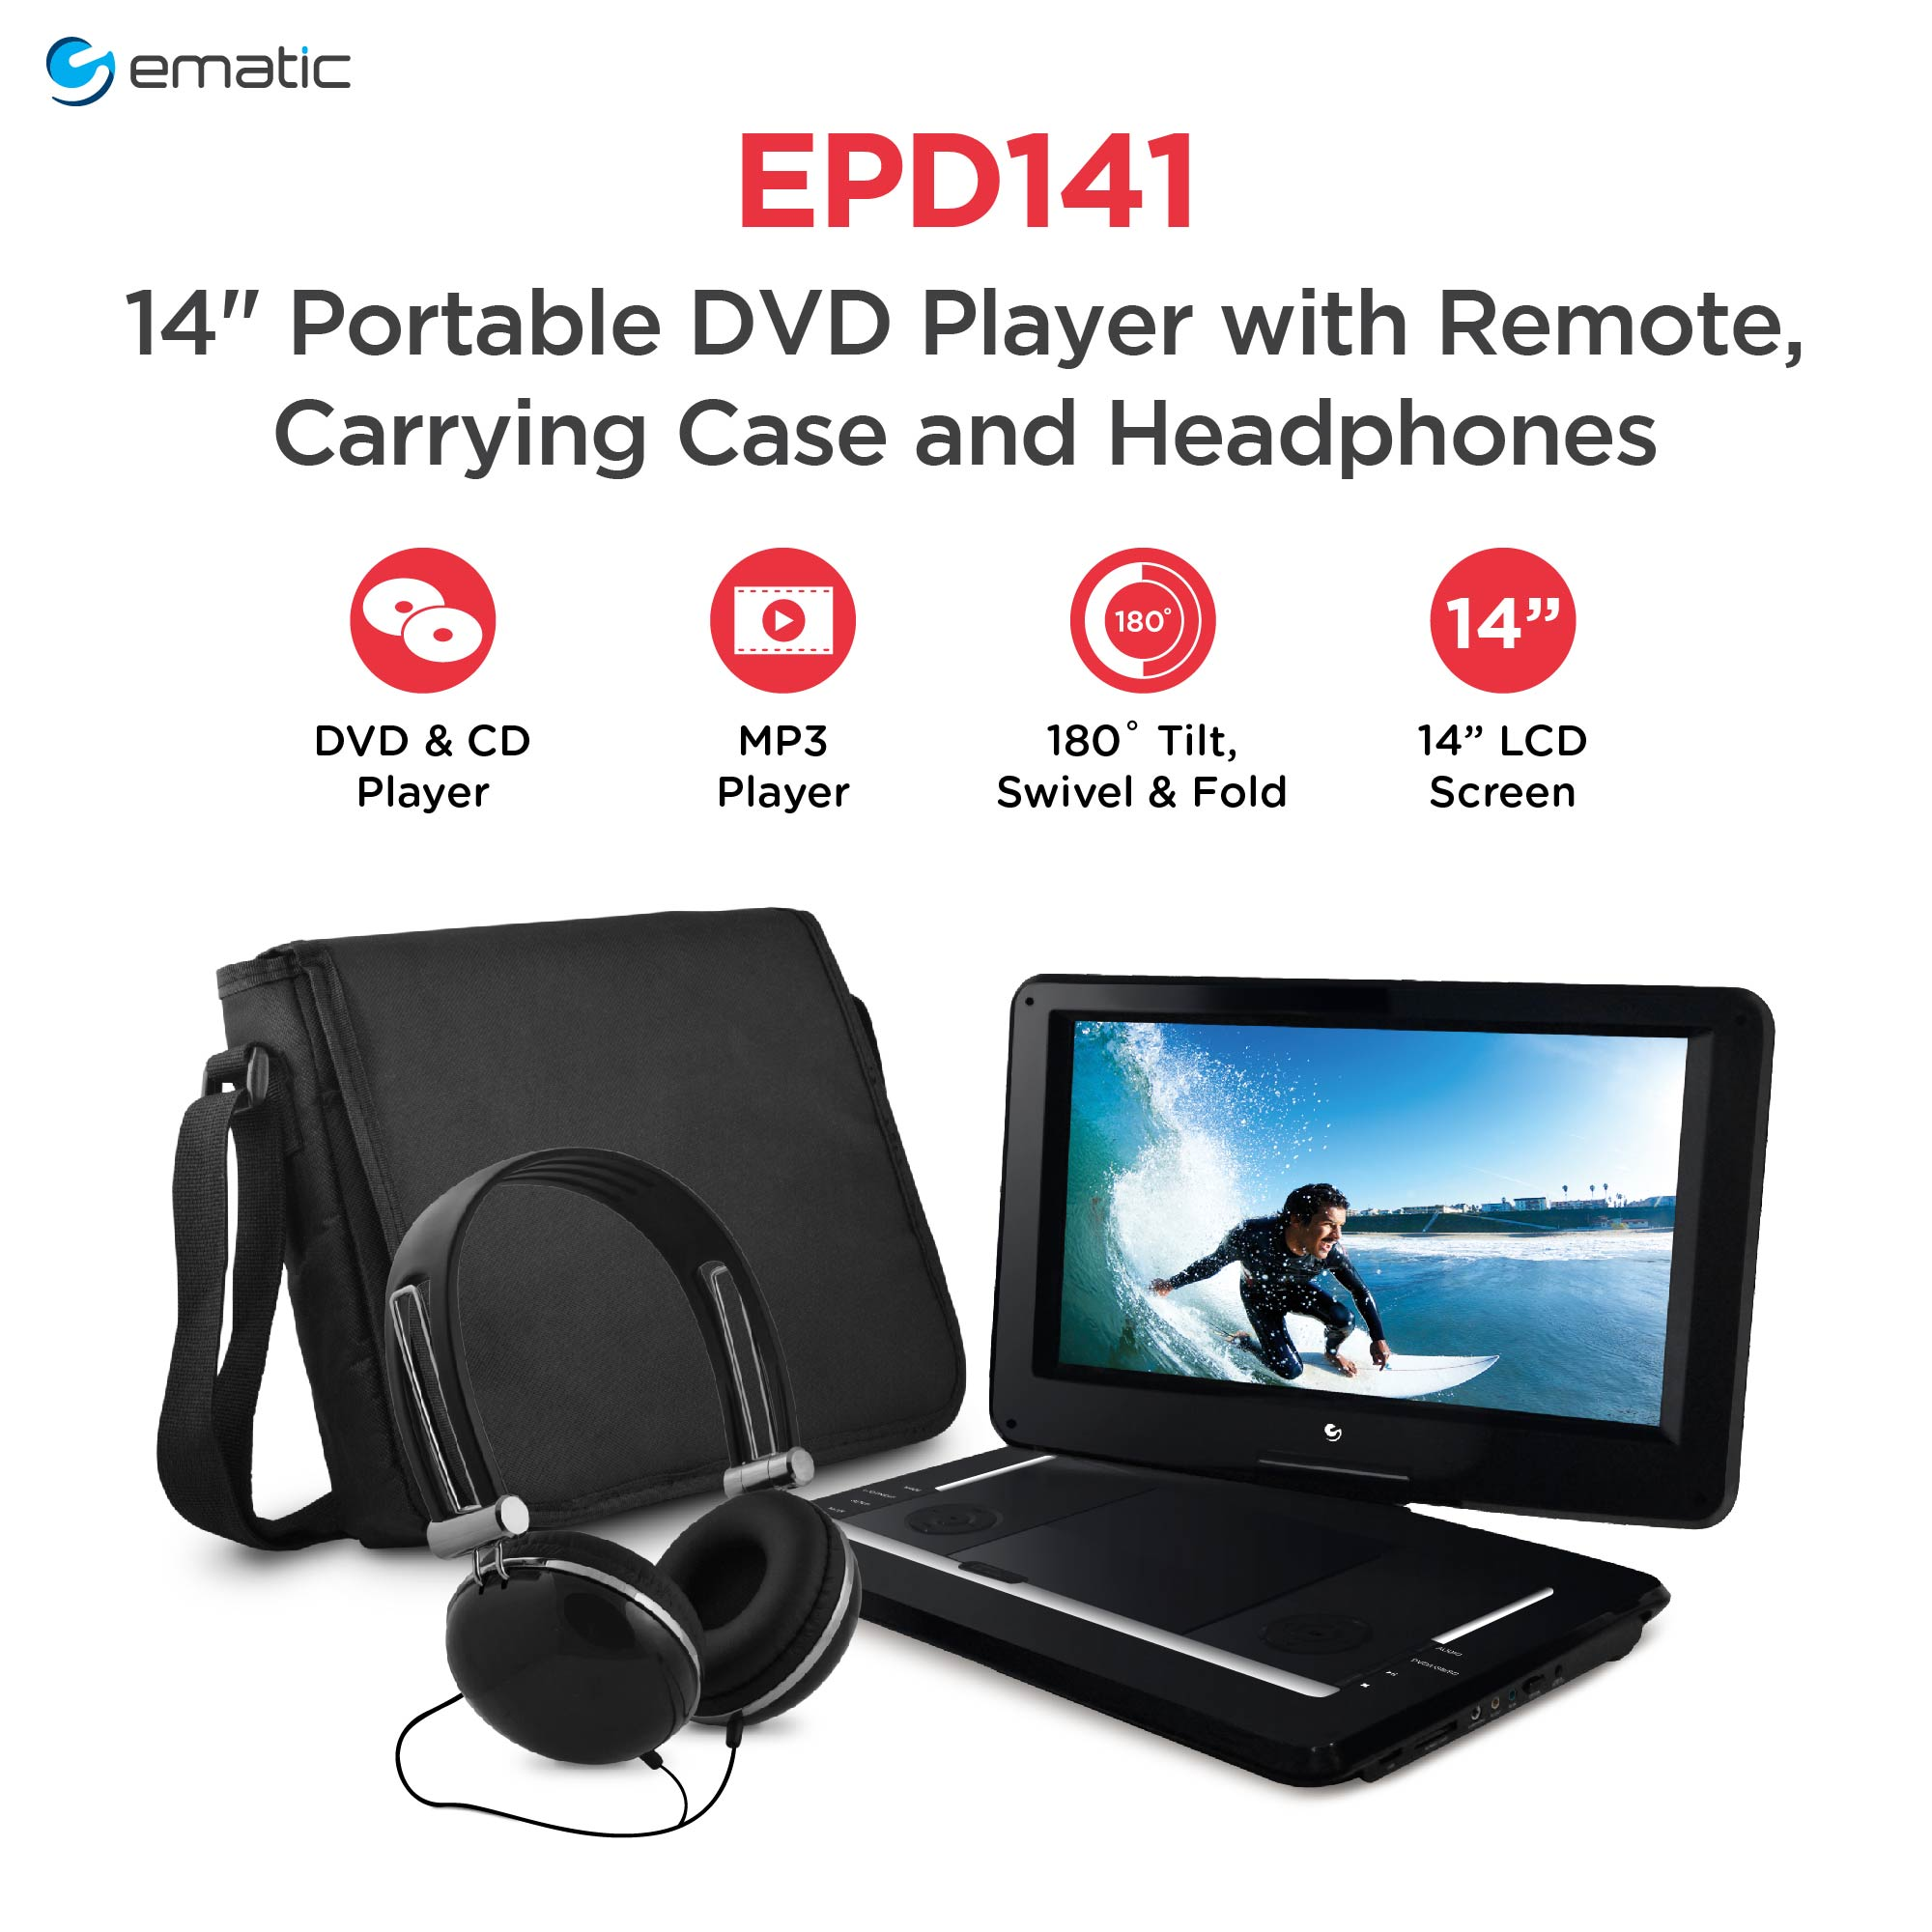 "Ematic 14"" Portable DVD Player with Remote, Carrying Case and Headphones"